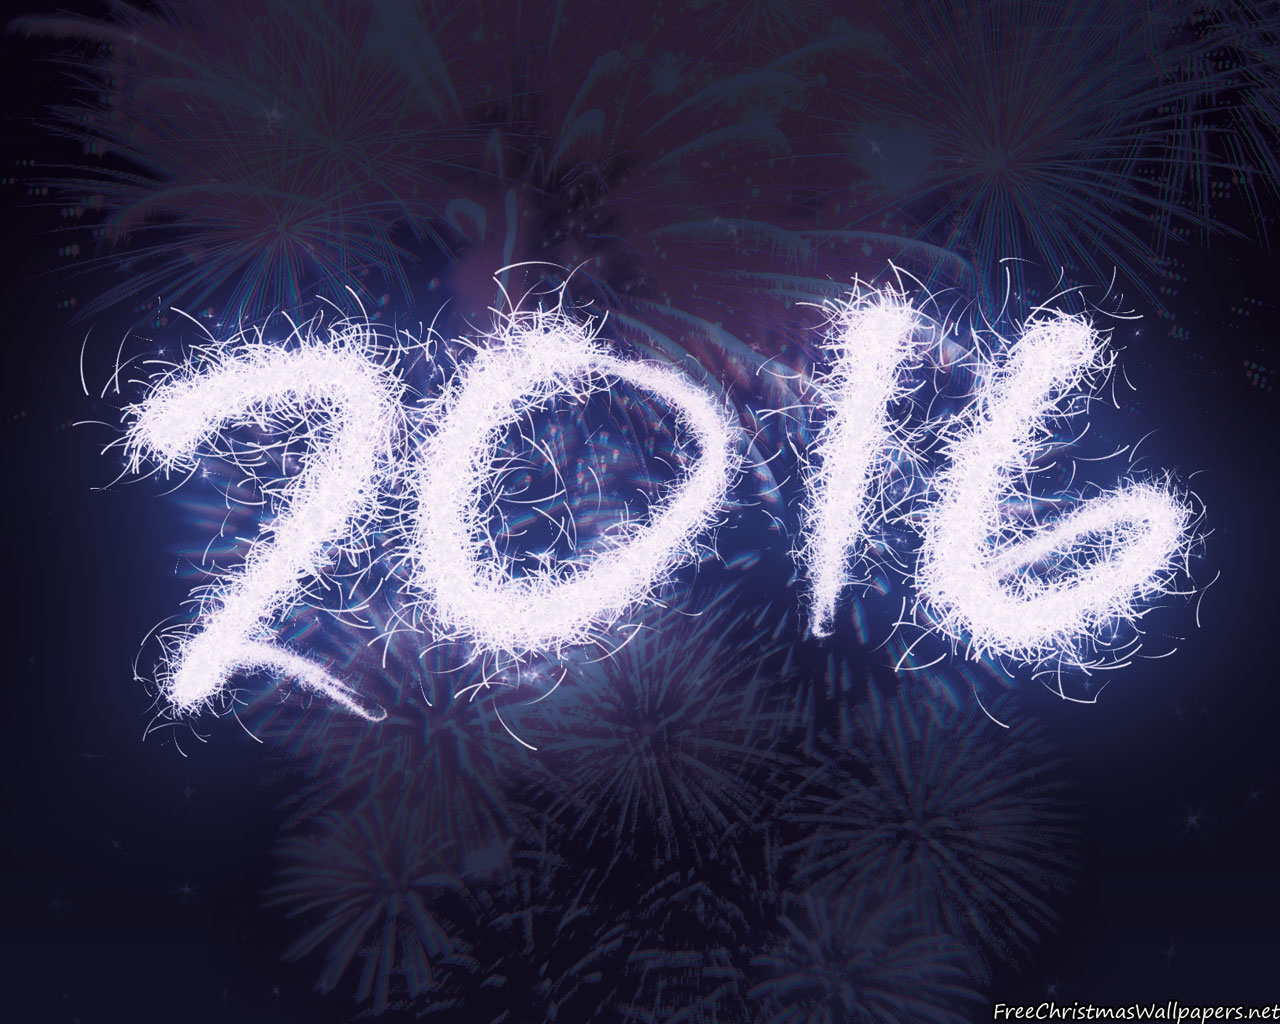 Happy New Year 2016 Pics HD Wallpaper 17421 Wallpaper computer 1280x1024